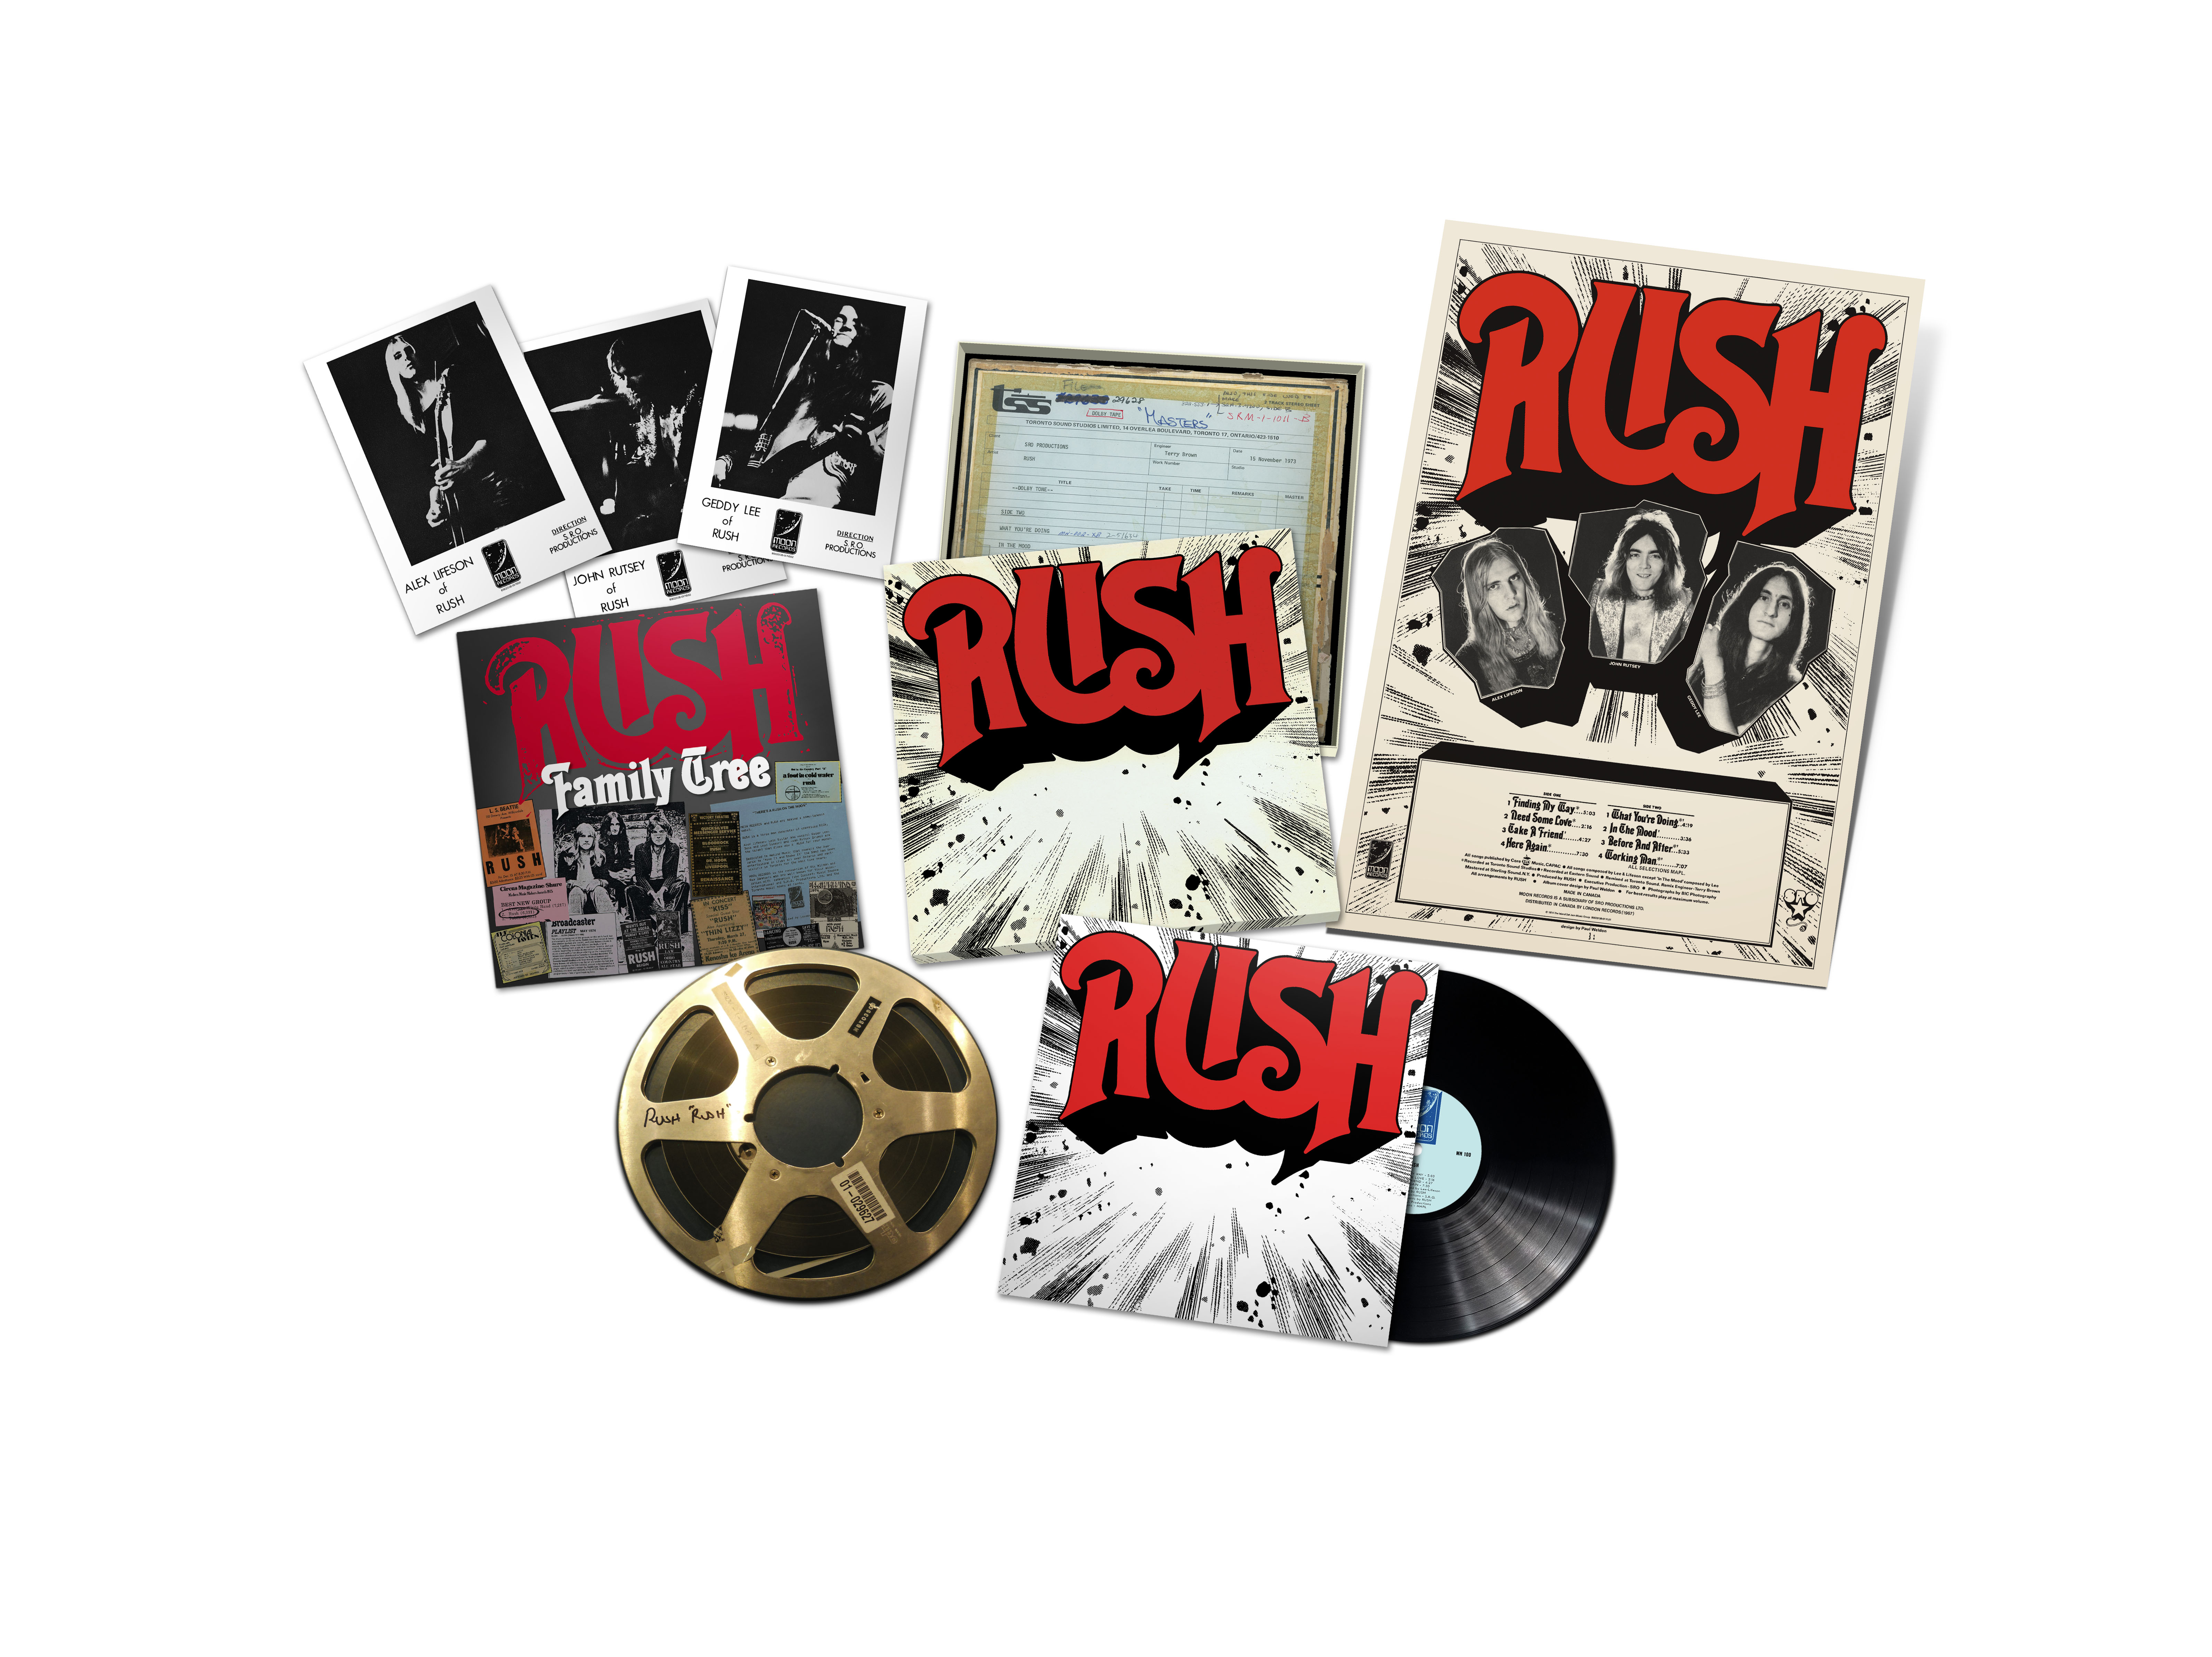 What They Re Doing Rush Set To Re Release Self Titled